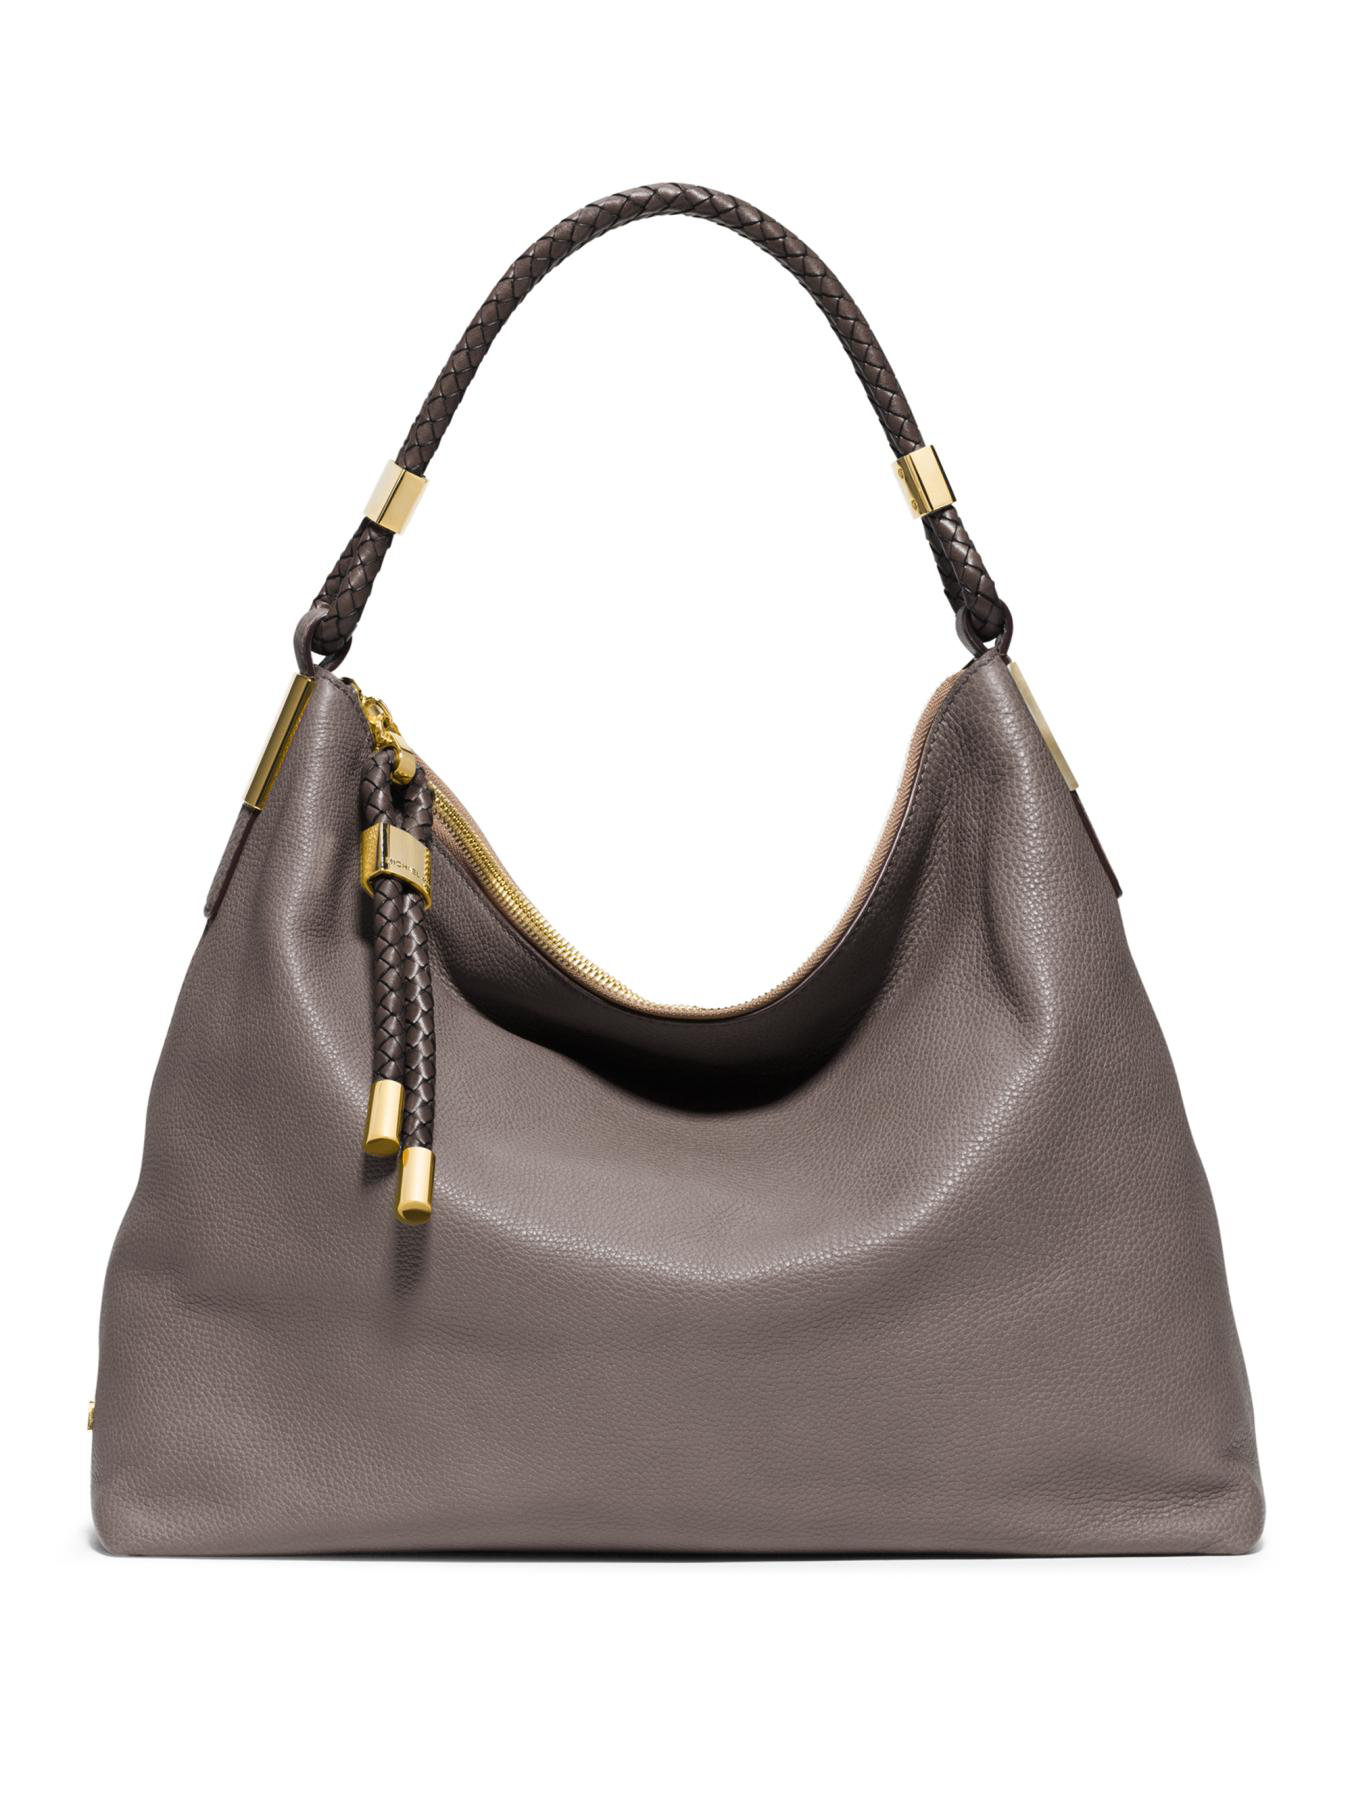 Michael kors Skorpios Medium Hobo Bag in Gray | Lyst